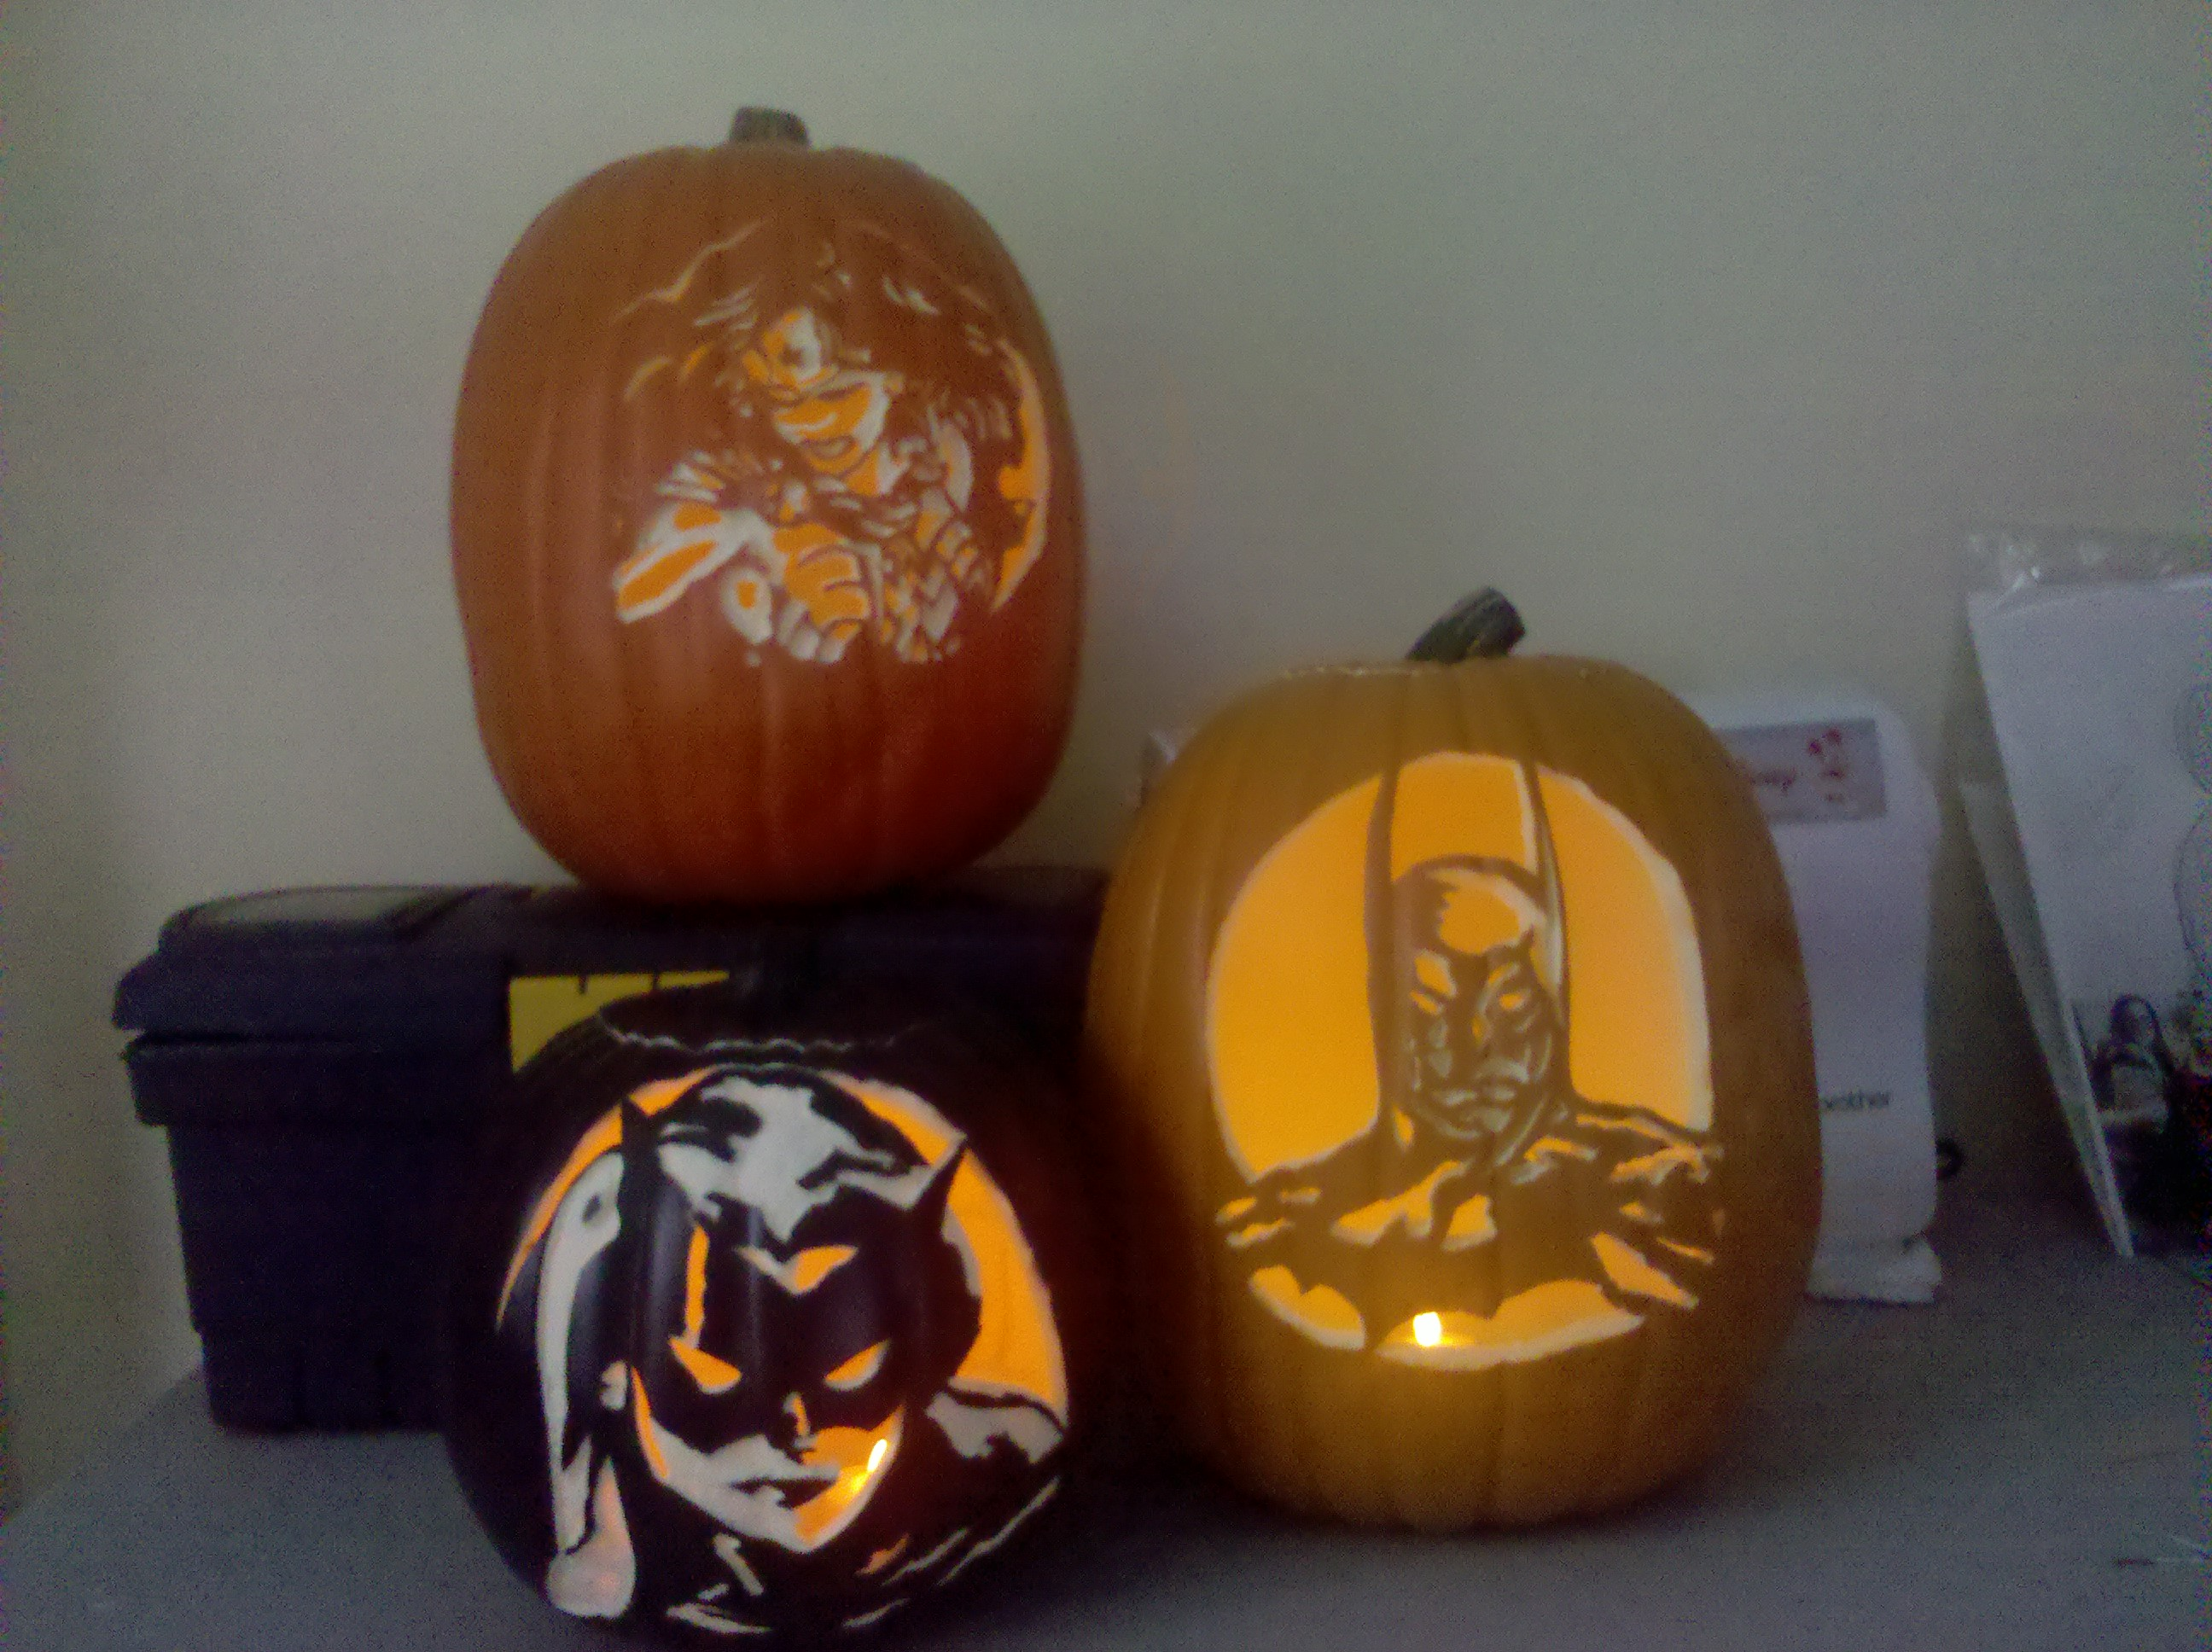 Pumpkin carving harley quinn based on terry dodson